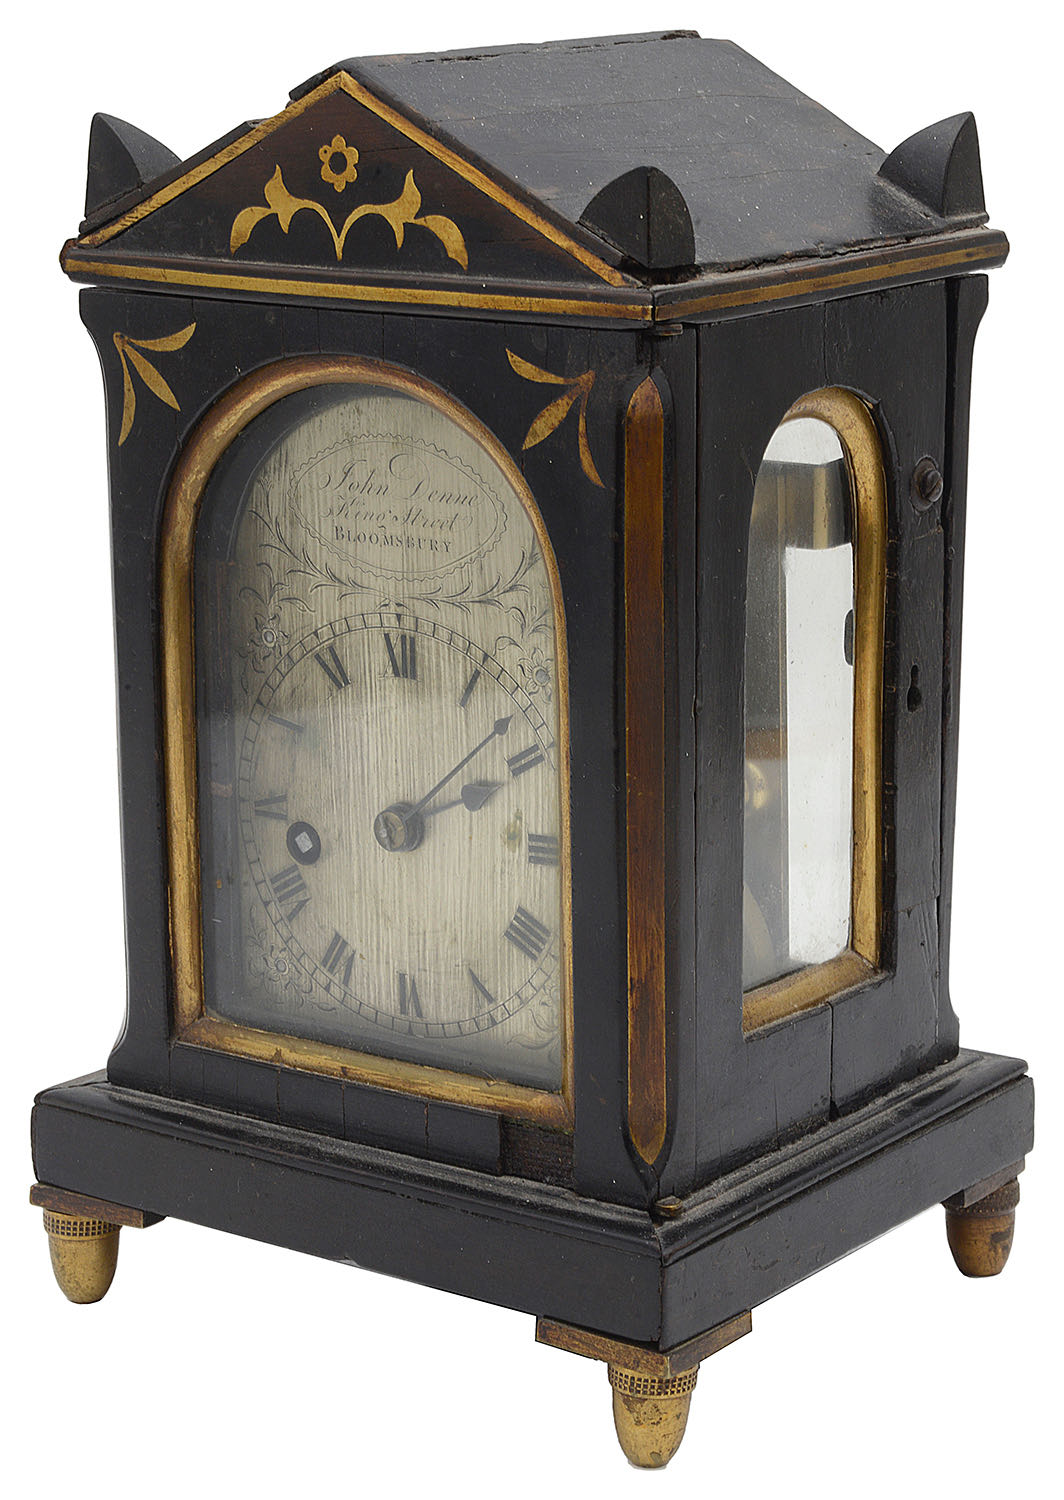 Lot 27 - A Regency rosewood and brass mantel architectural timepiece